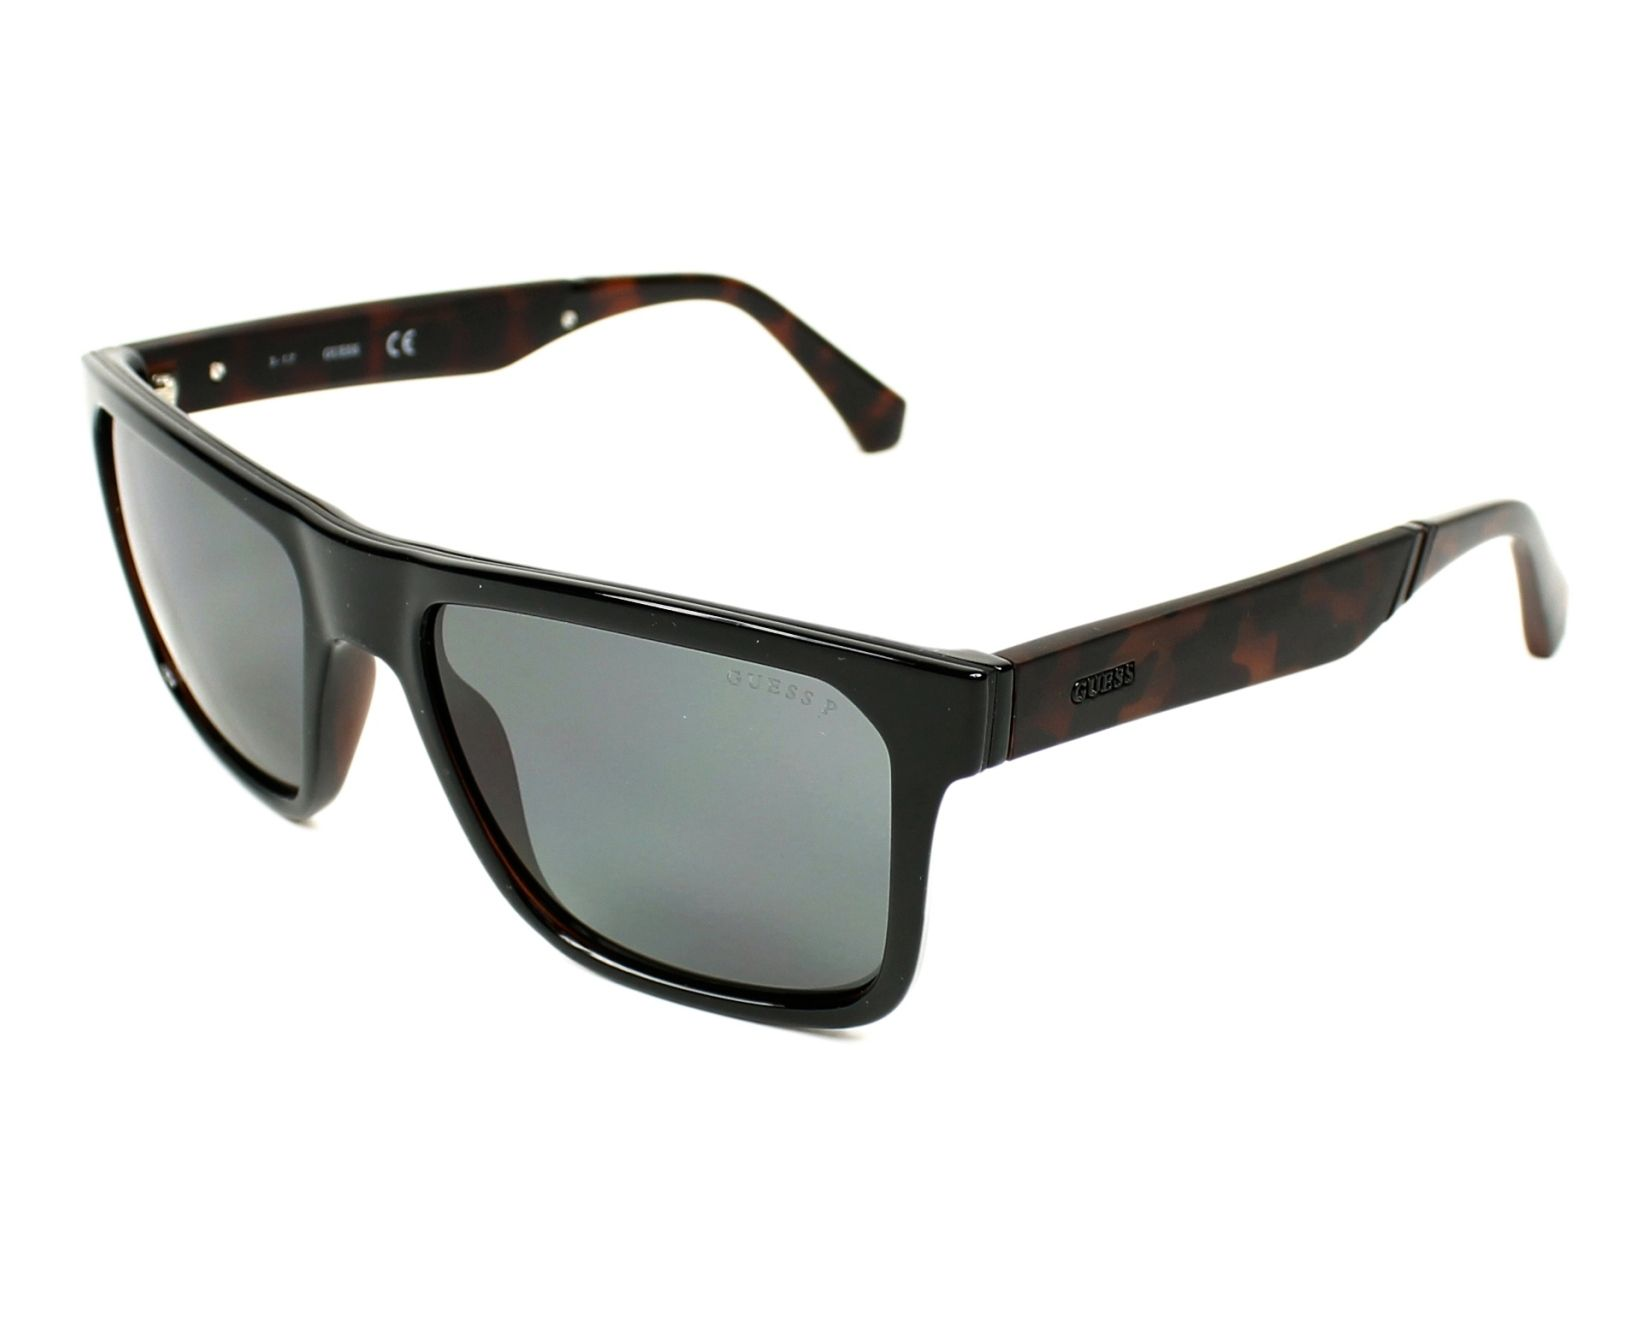 Guess Sunglasses Gu 6906 01d Black With Grey